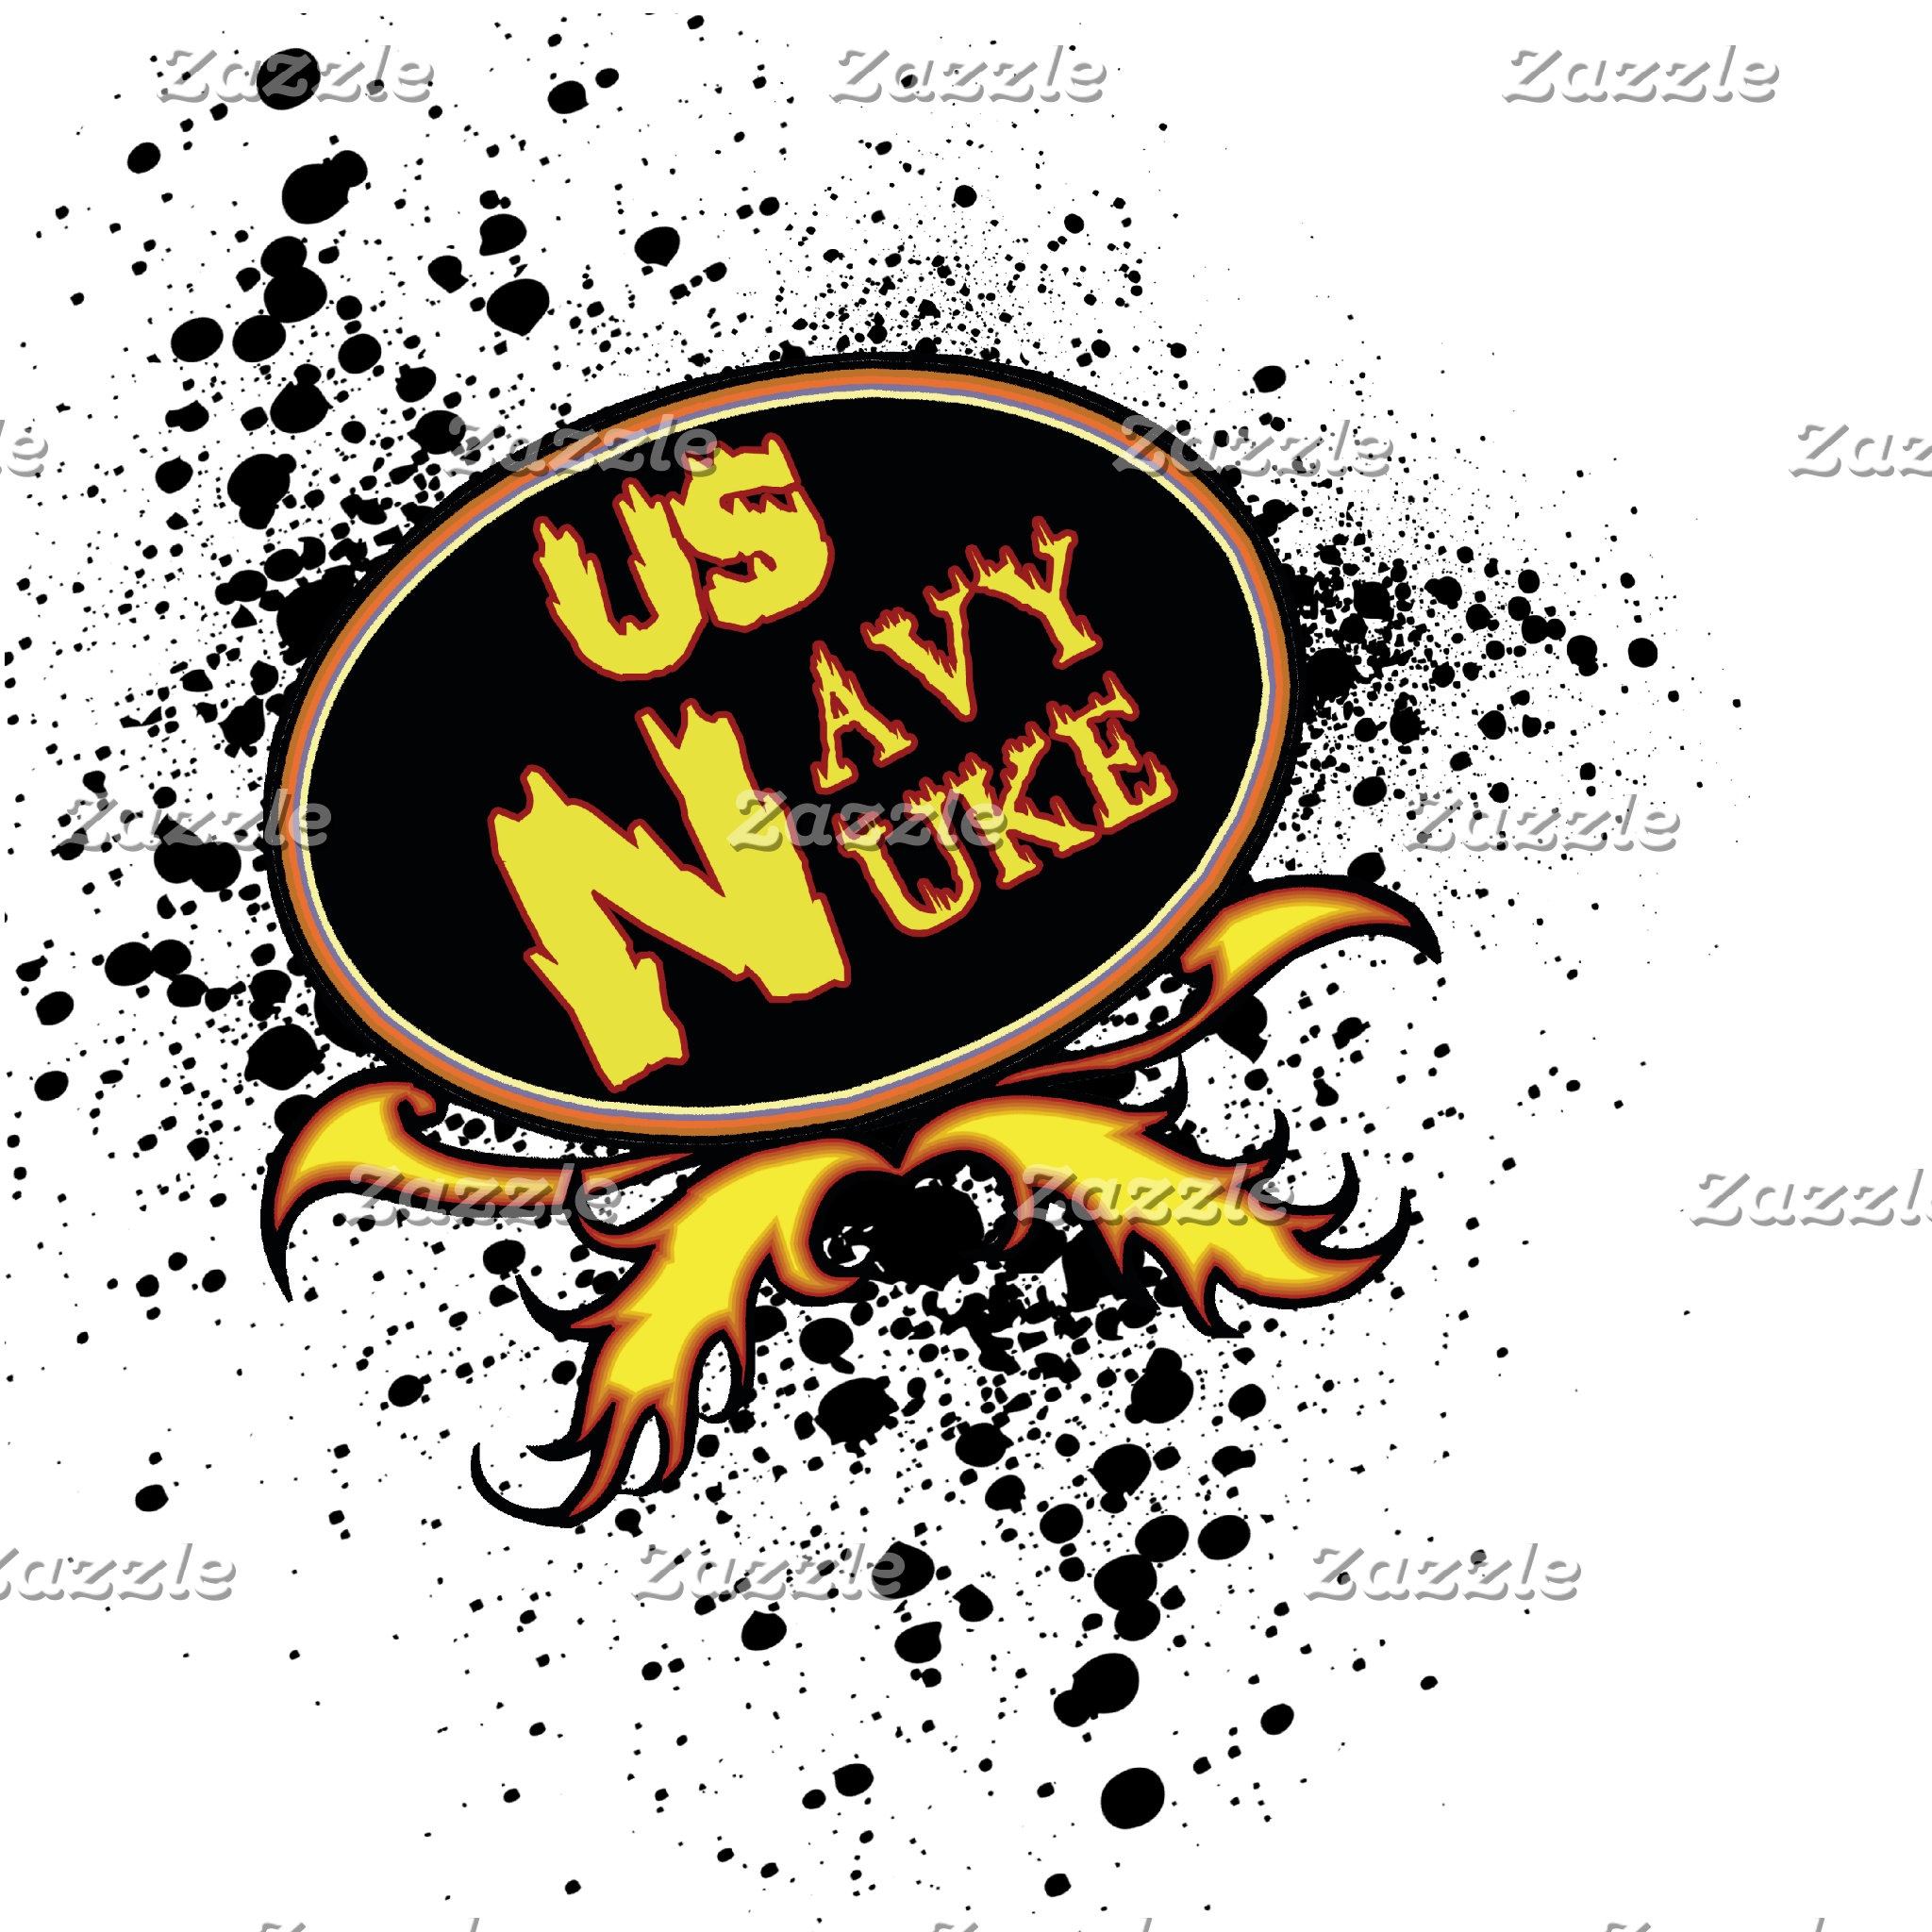 US Navy Nuke with flaming font